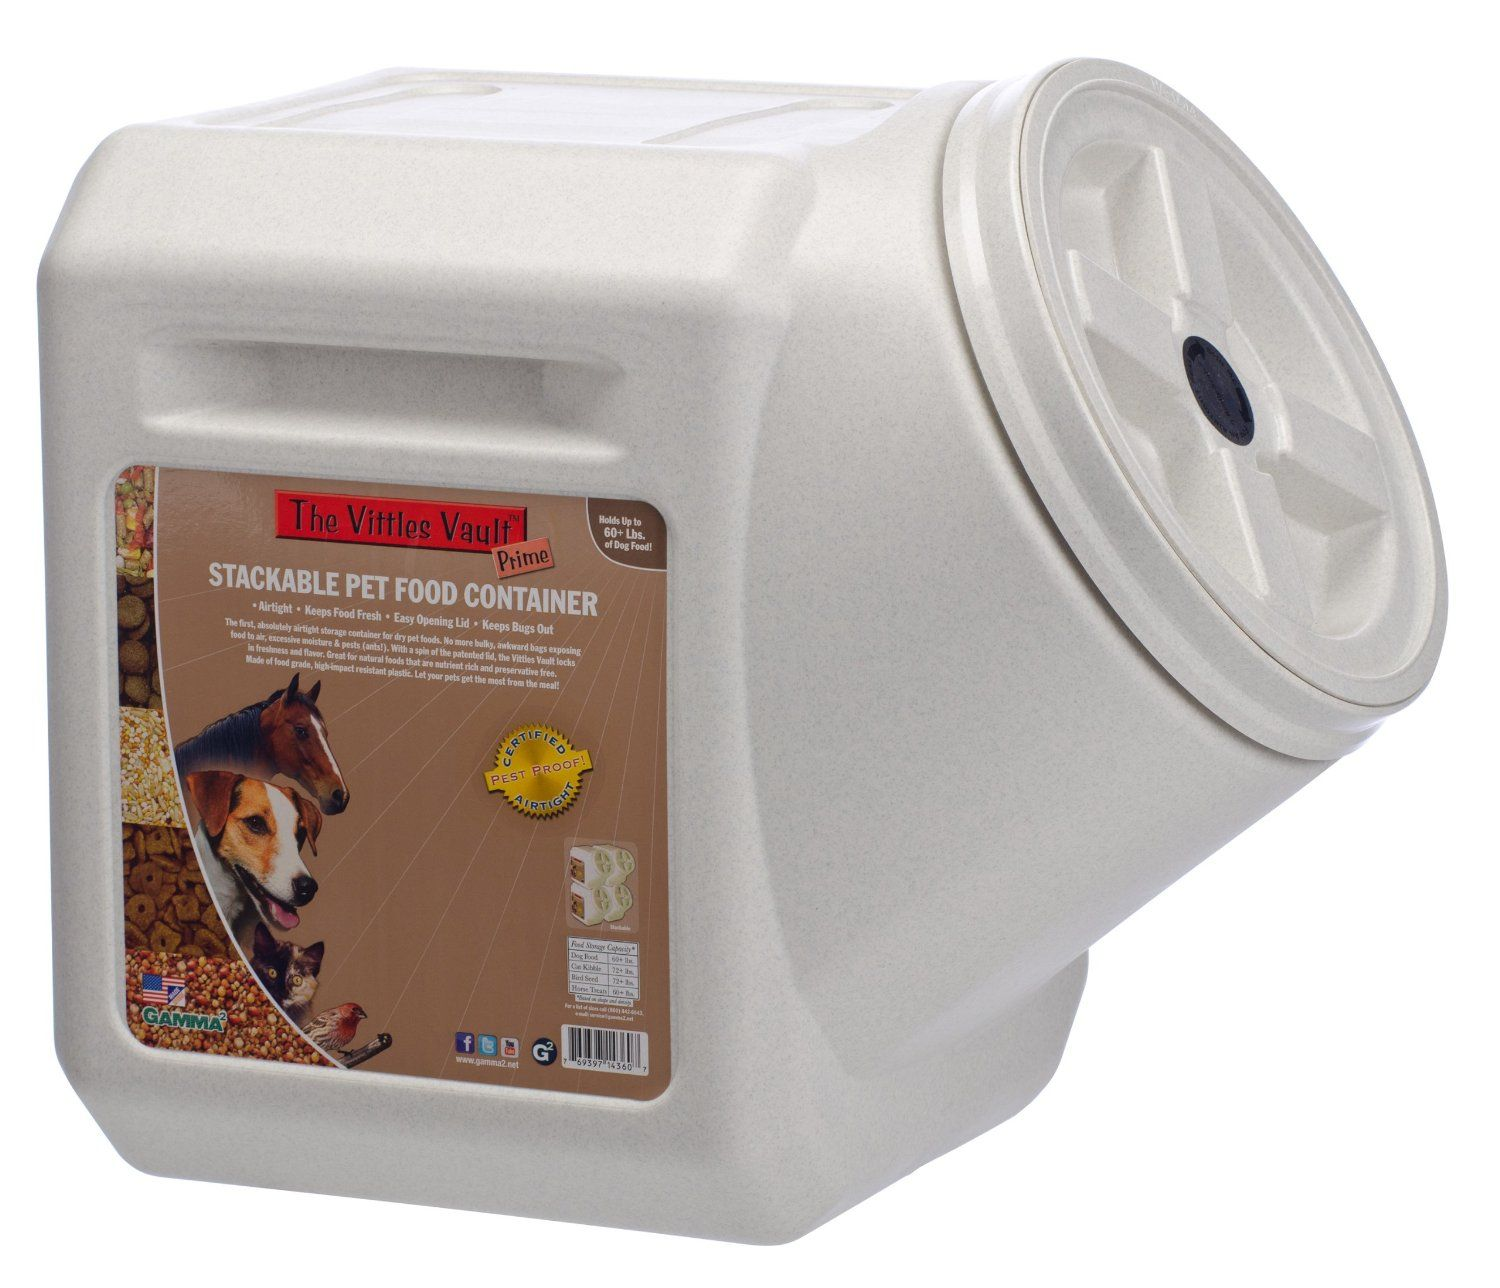 Pin By Ryan Dognaux On Christmas 2014 Pet Food Container Pet